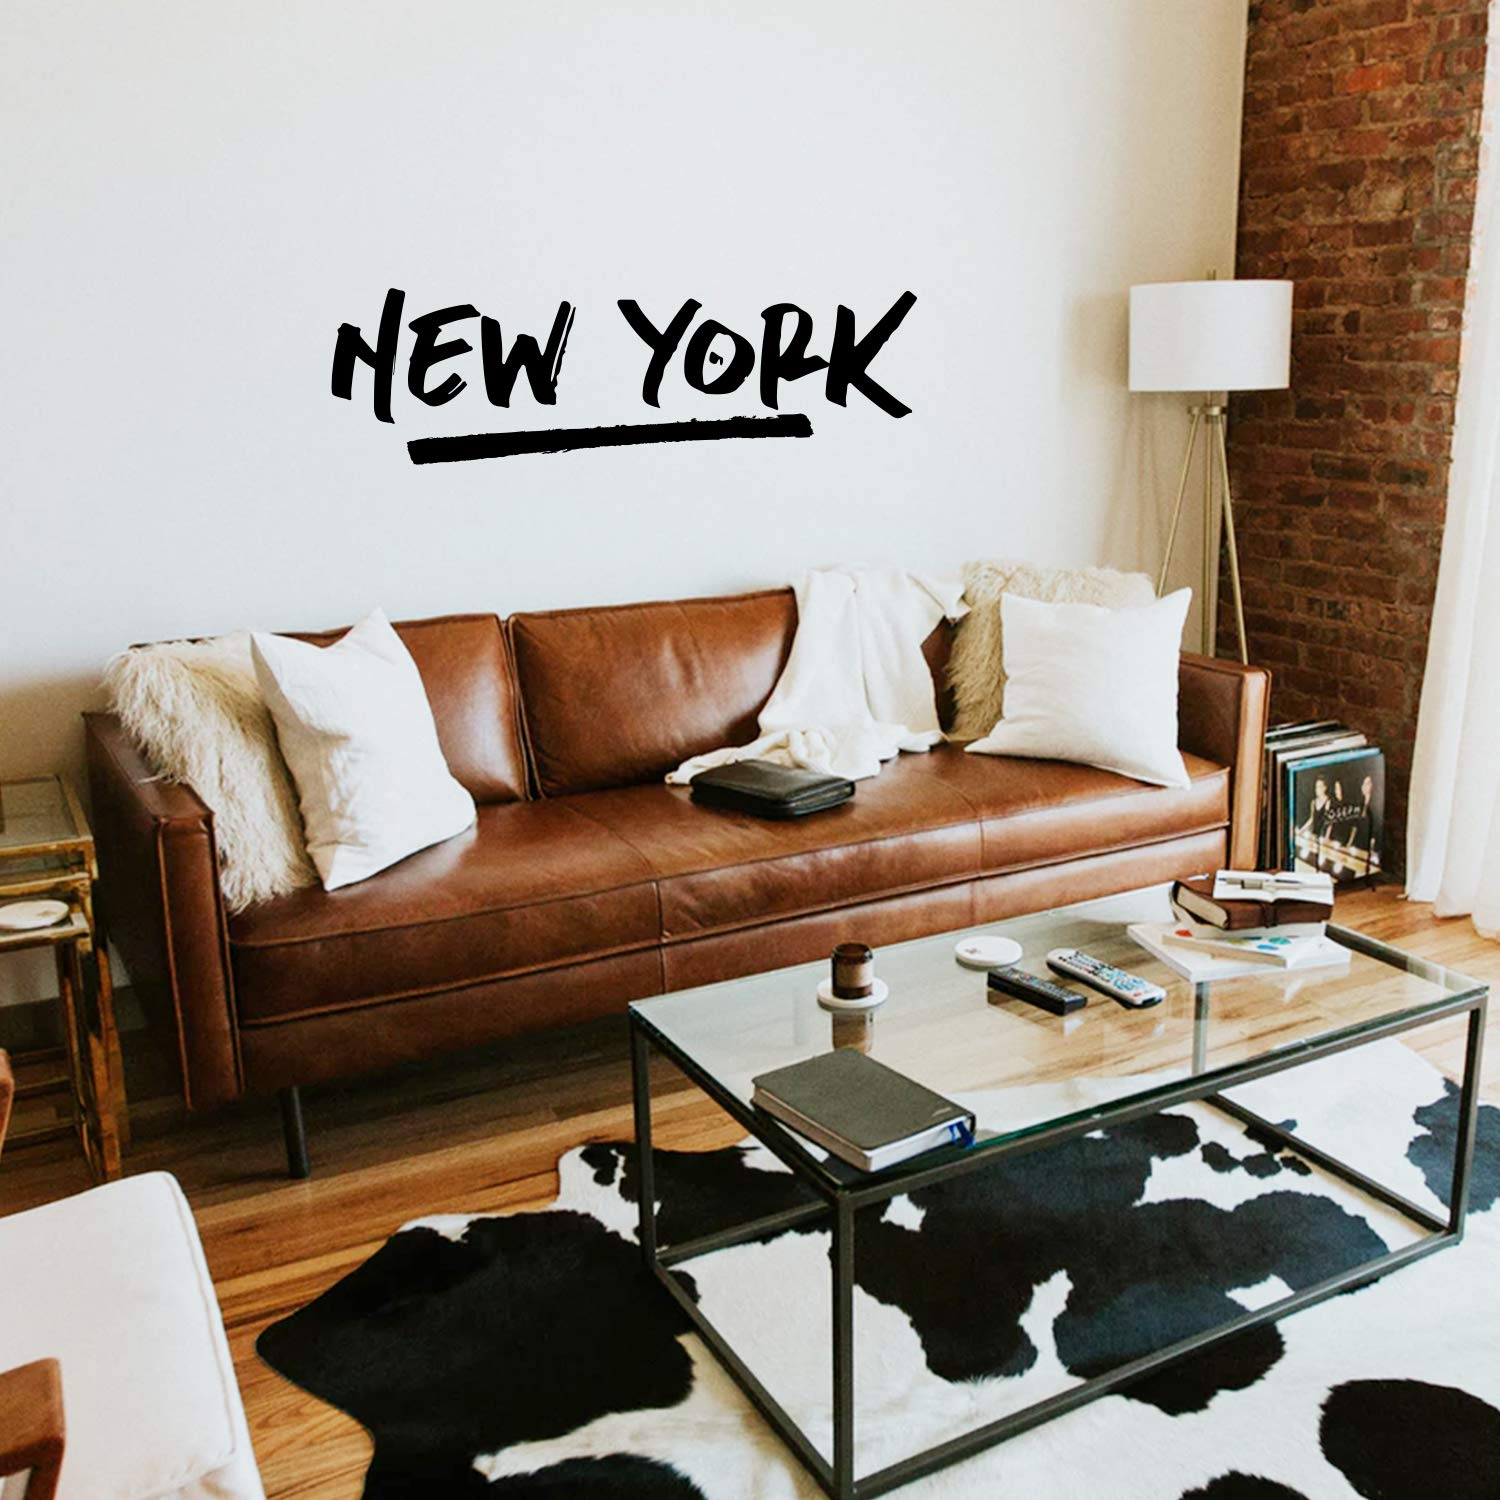 """Vinyl Wall Art Decal - New York - 15"""" x 50"""" - Cool Stencil Text Design Modern American USA East Coast City Home Bedroom Living Room Mural Indoor Outdoor Decoration Adhesive"""